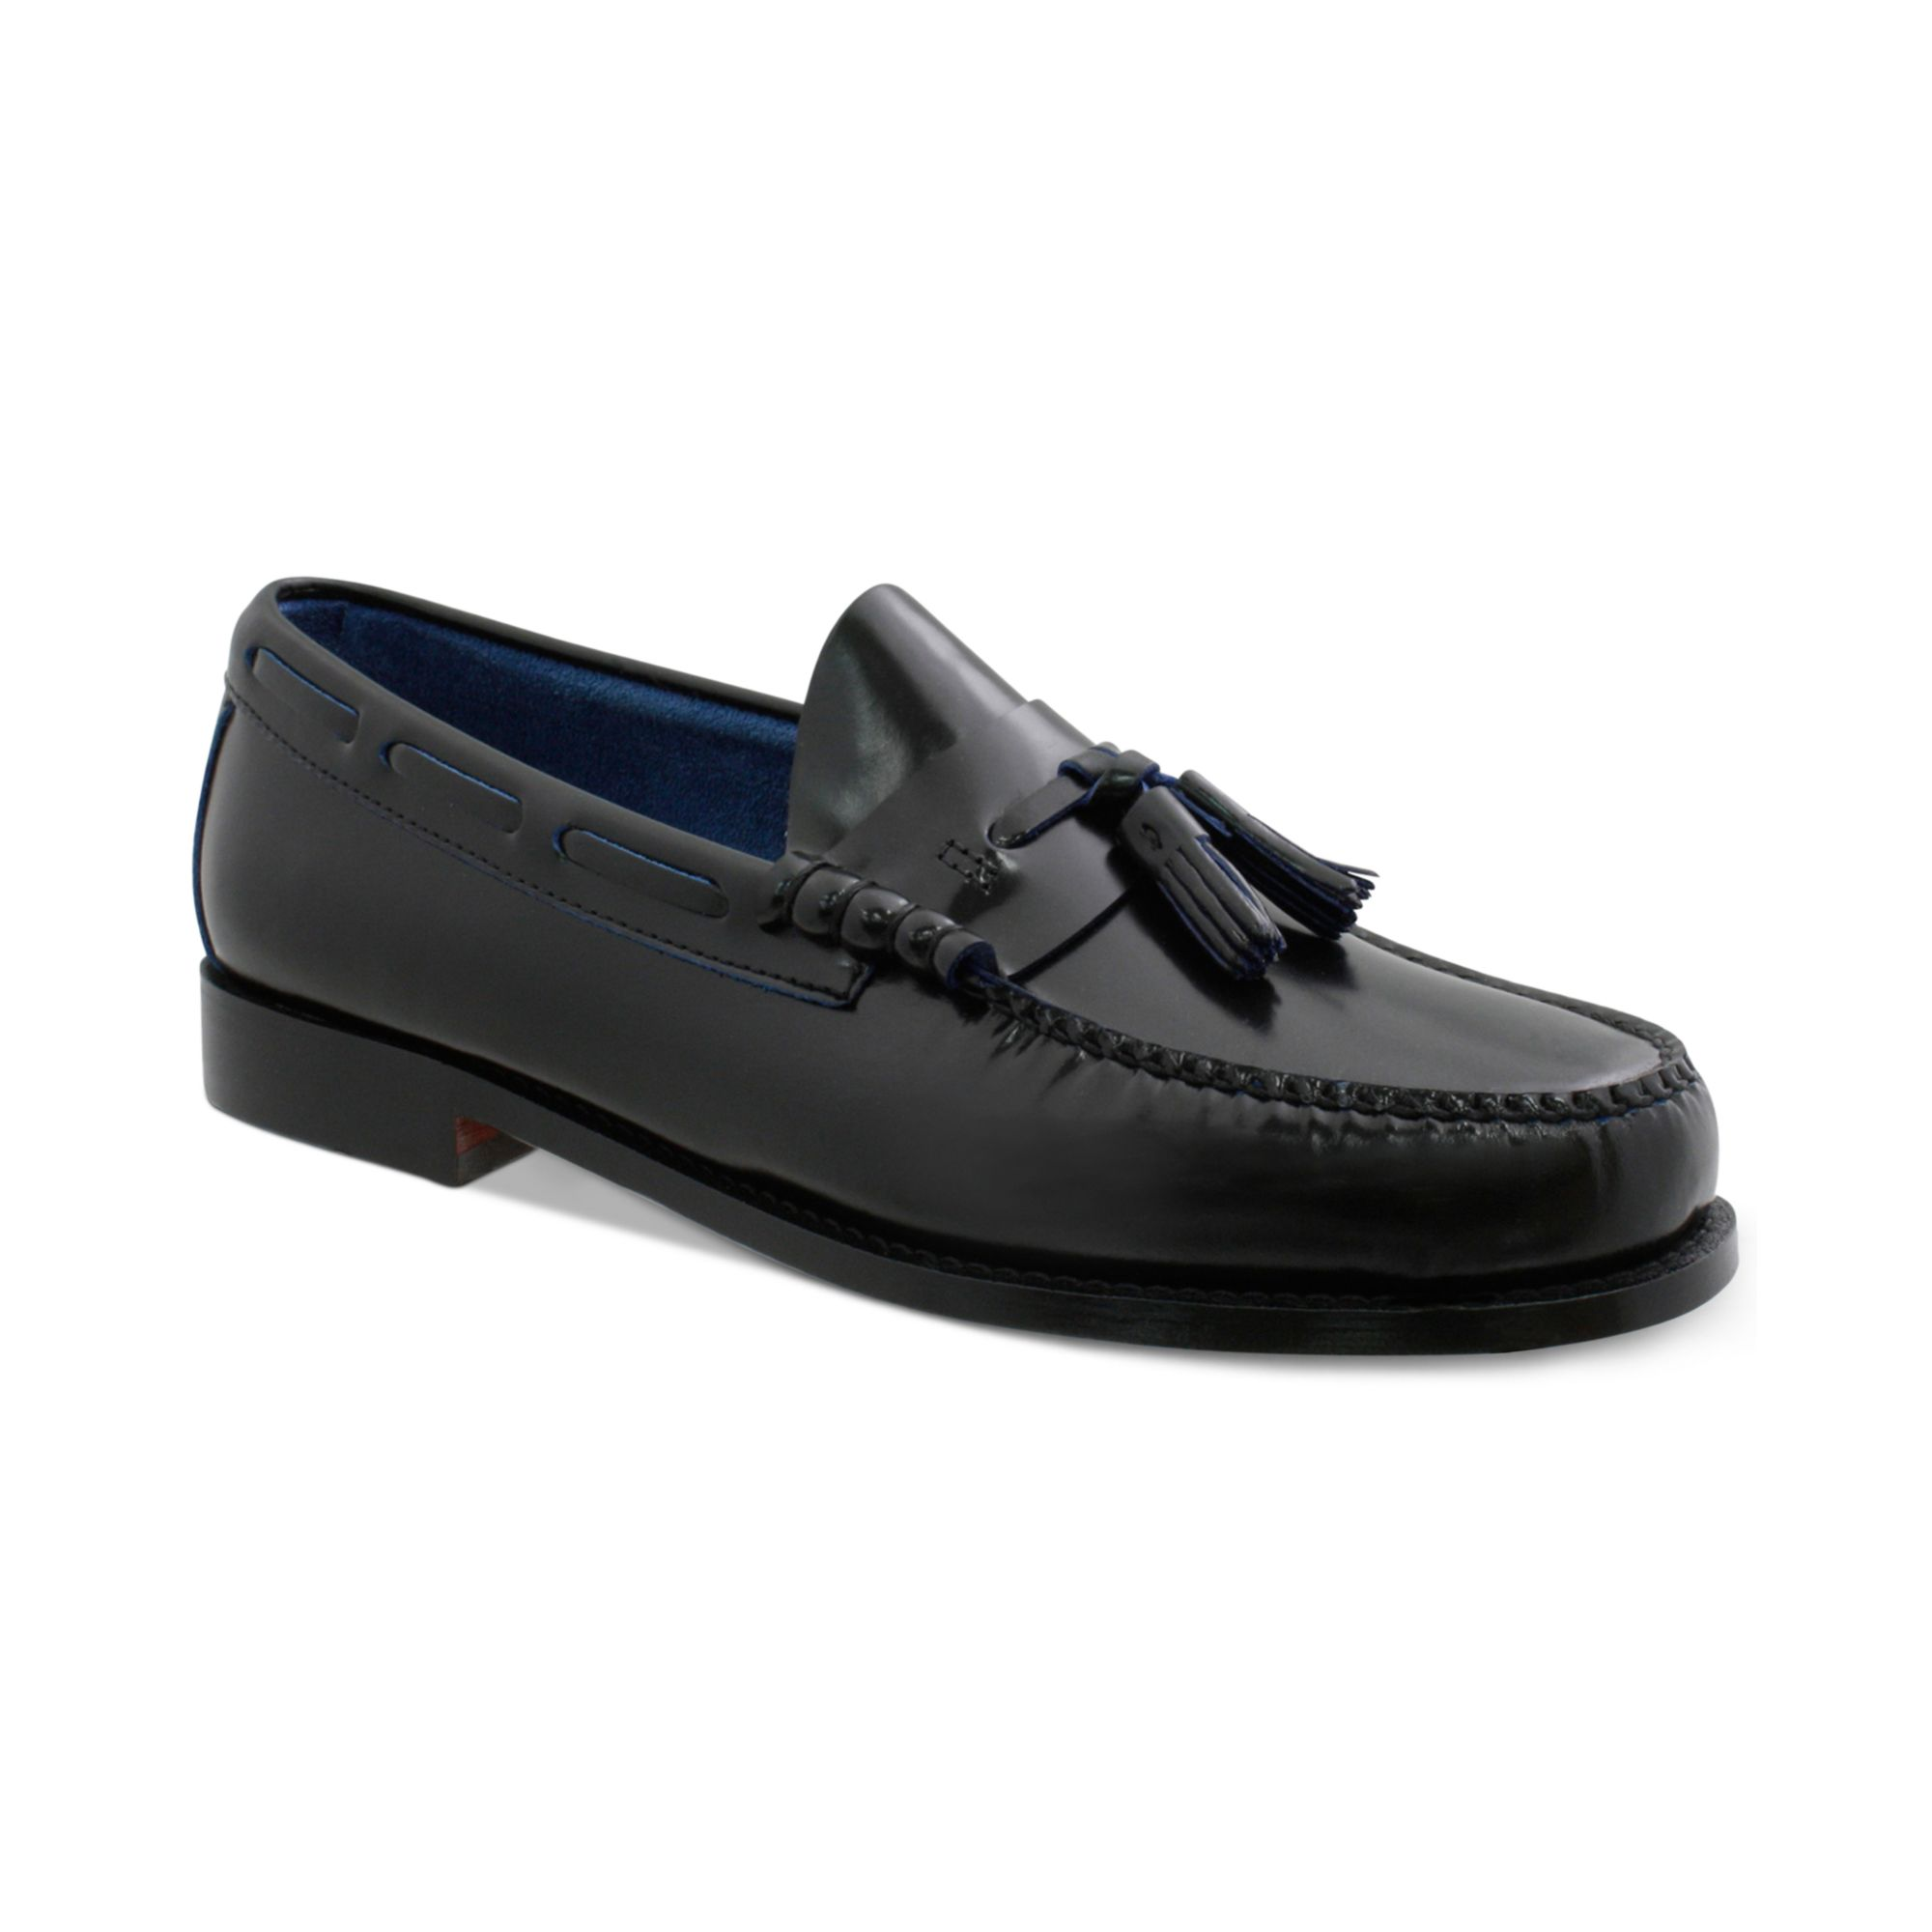 Discover the latest in men's loafers with ASOS. Slip on shoes, penny loafers & suede loafers are perfect for casual day-to-day footwear. Shop now at ASOS. ASOS DESIGN Wide Fit vegan friendly tassel loafers in black faux suede. £ ASOS DESIGN vegan friendly loafers in .